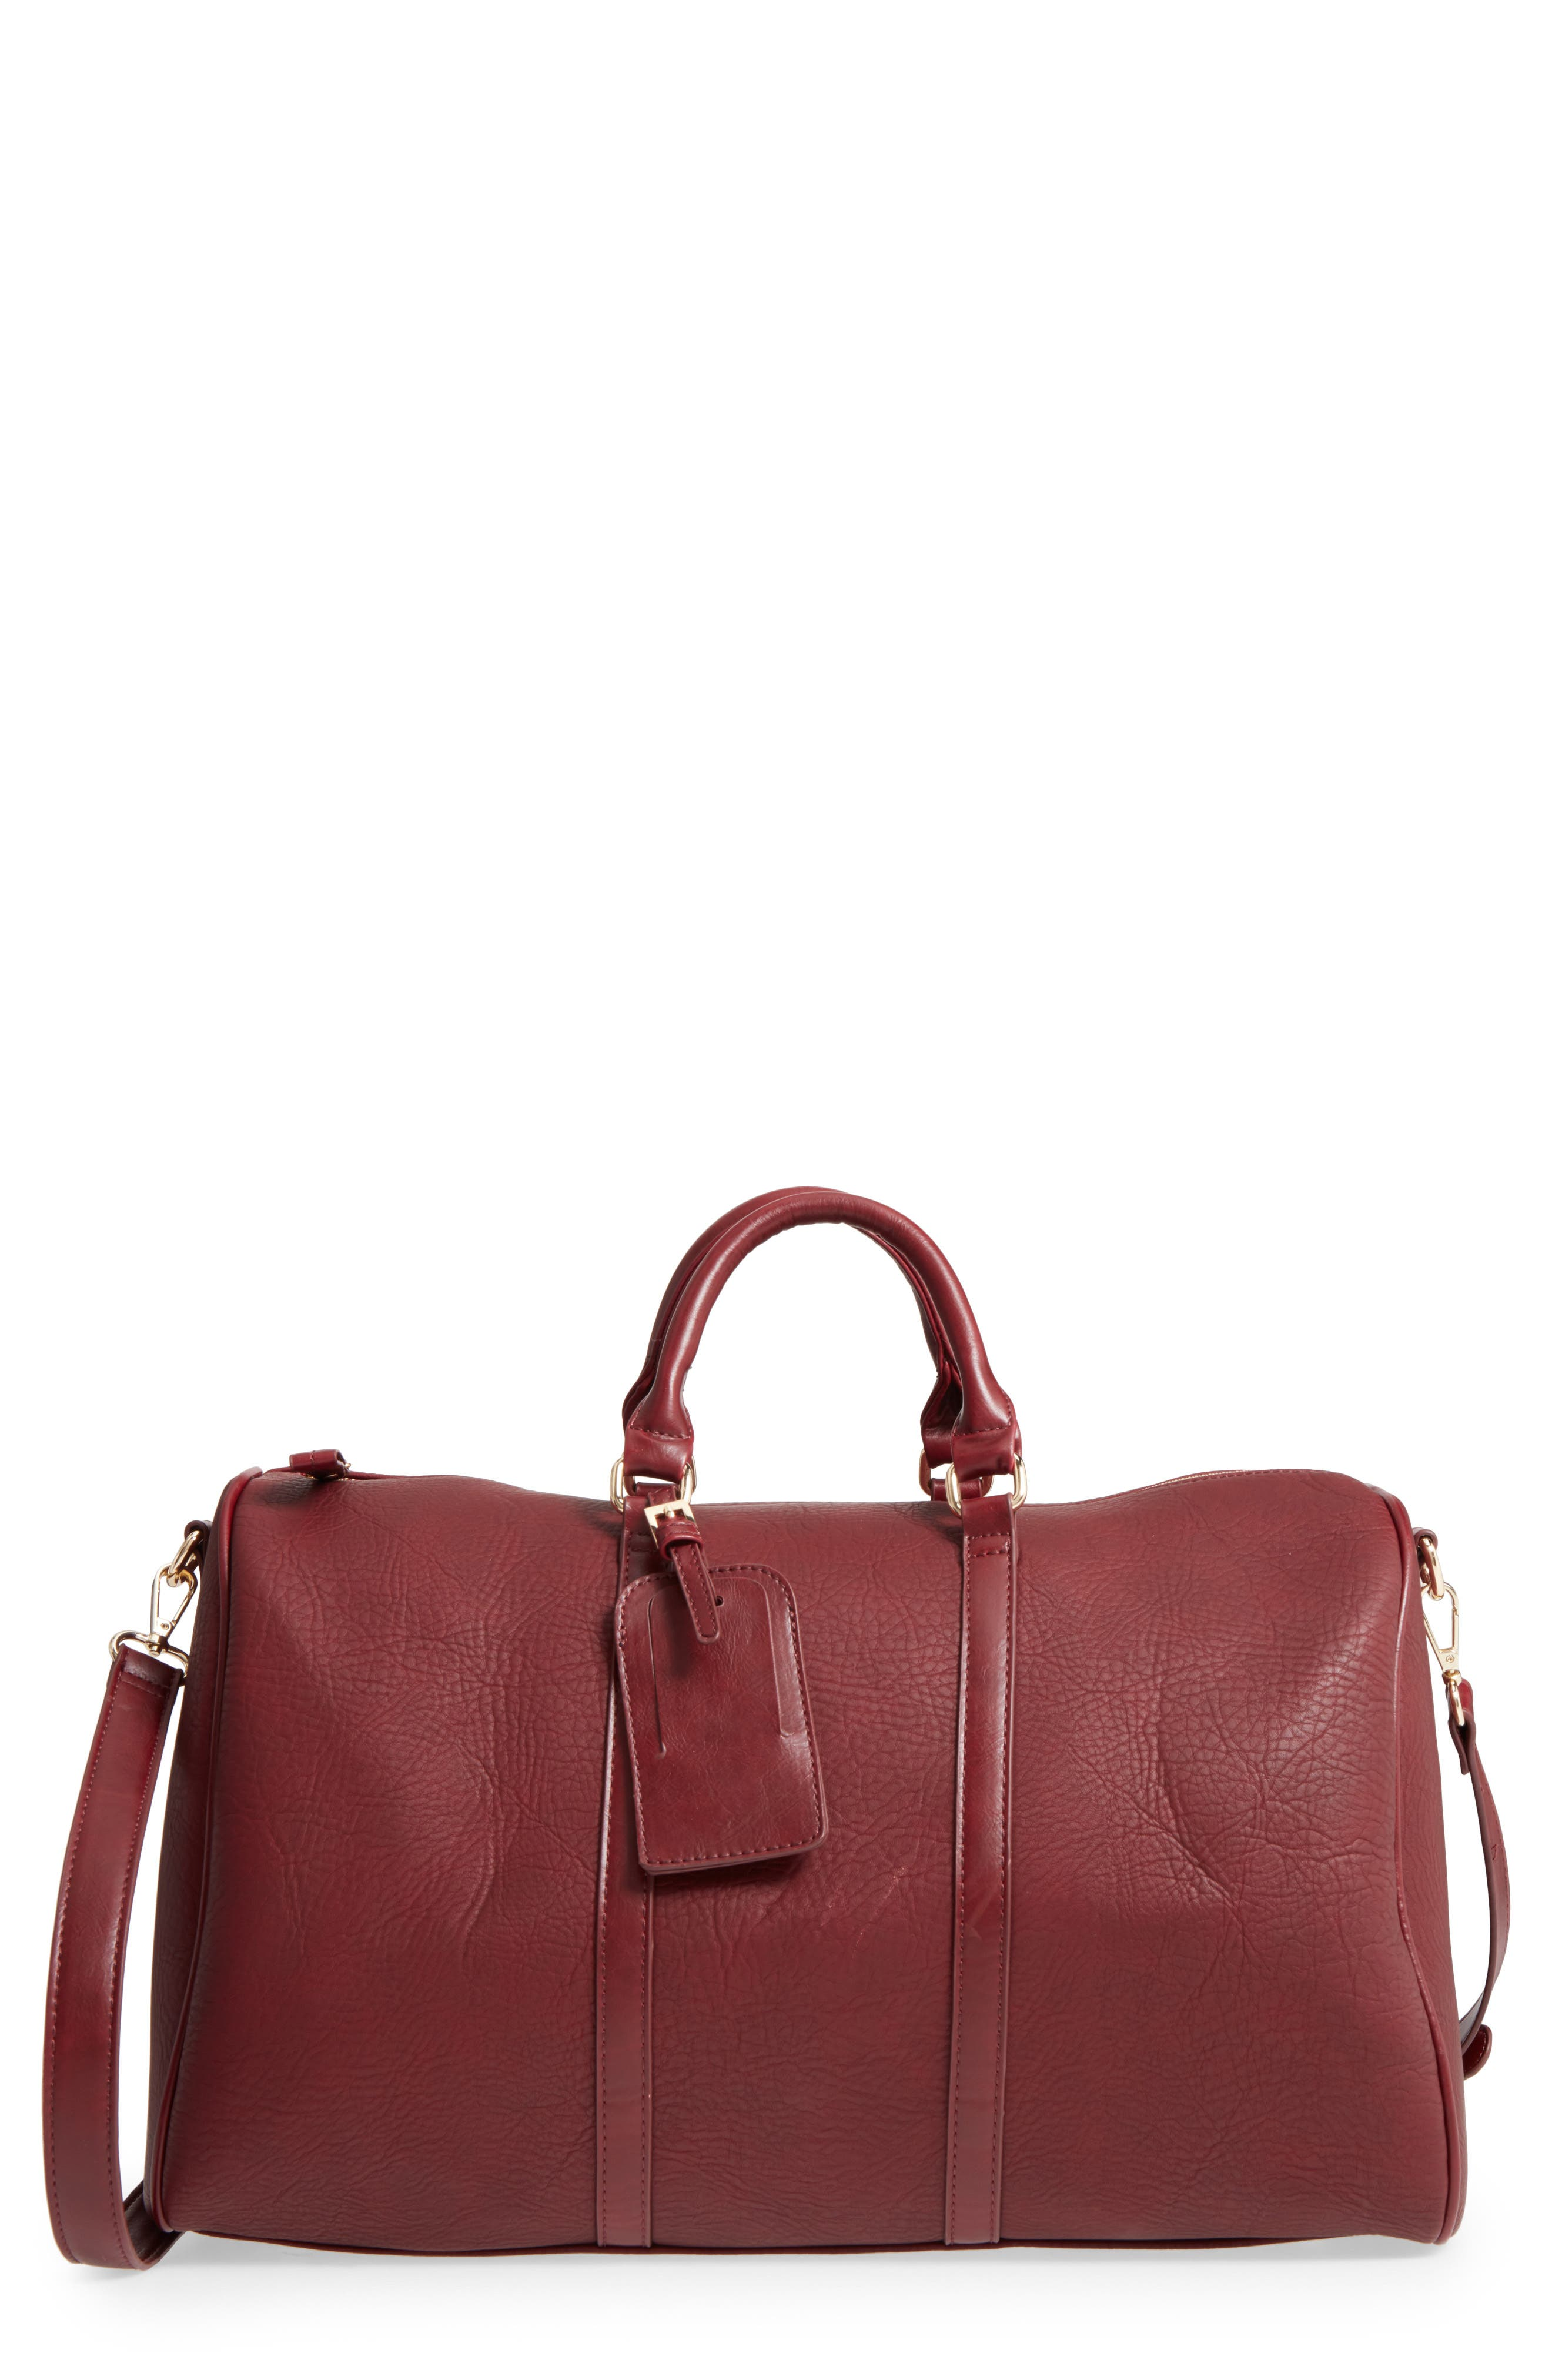 Alternate Image 1 Selected - Sole Society 'Cassidy' Faux Leather Duffel Bag